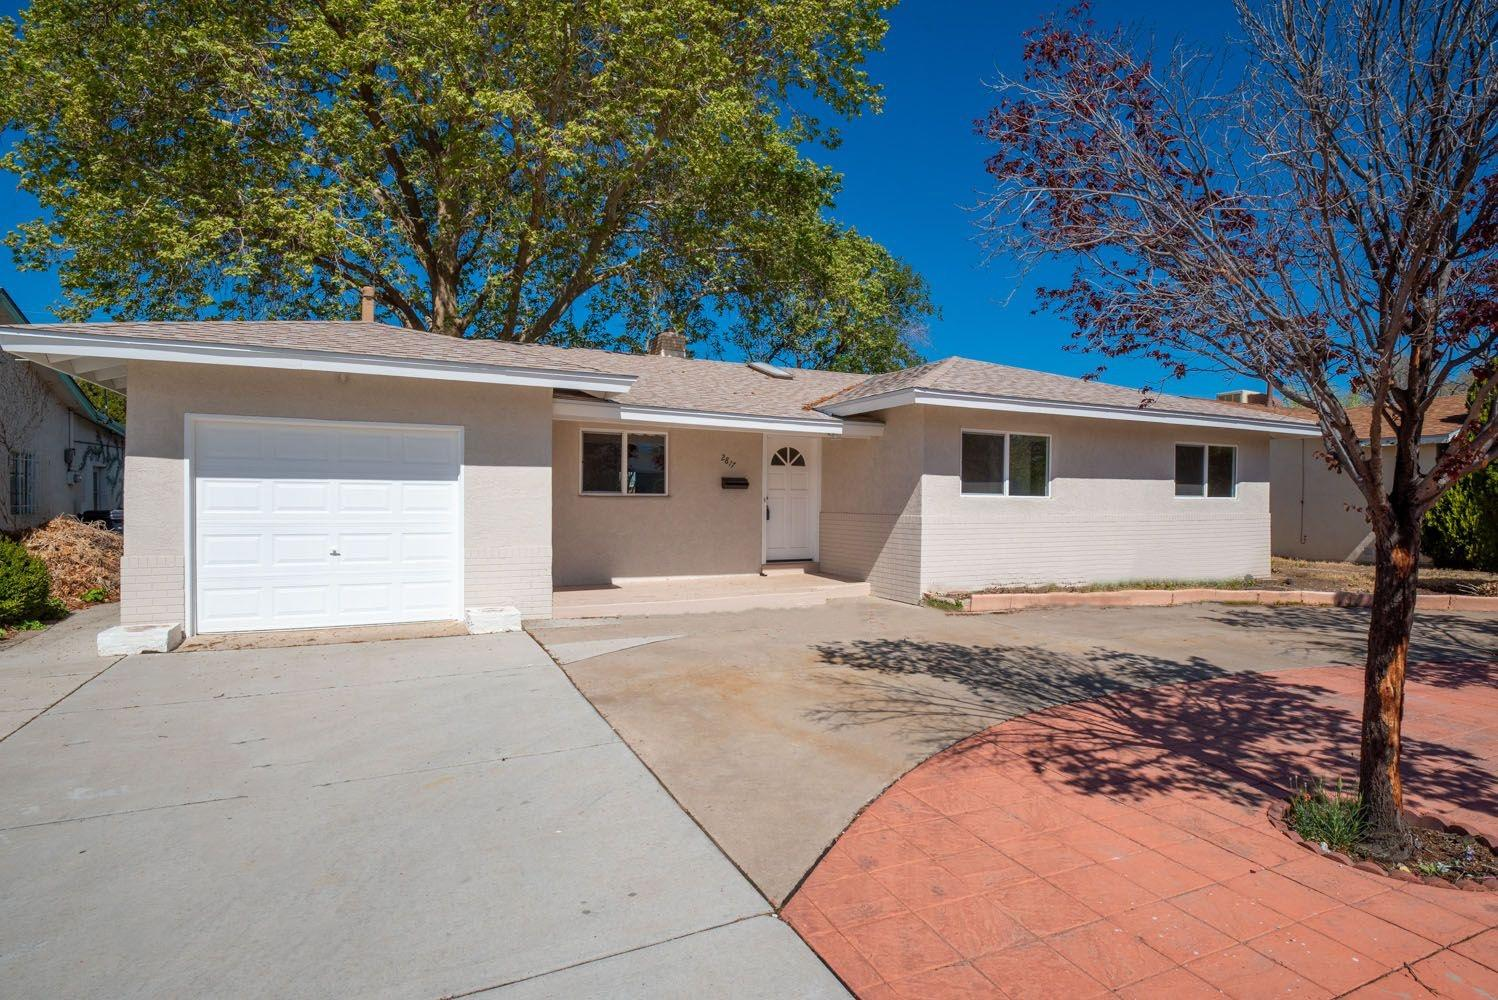 Beautifully remodeled home with tons of updates. This home features a brand new roof installed Oct 2020. New windows that bring in natural light throughout the home. New HVAC system and refrigerated air conditioning perfect for those NM summer days. New paint and vinyl flooring throughout. Oversized master with walk-in closet, master bath features a gorgeous vanity. Open remodeled kitchen with new appliances. Private low maintenance front and backyard with a lovely tree that shades your entire backyard.Screen for the fireplace has been ordered.